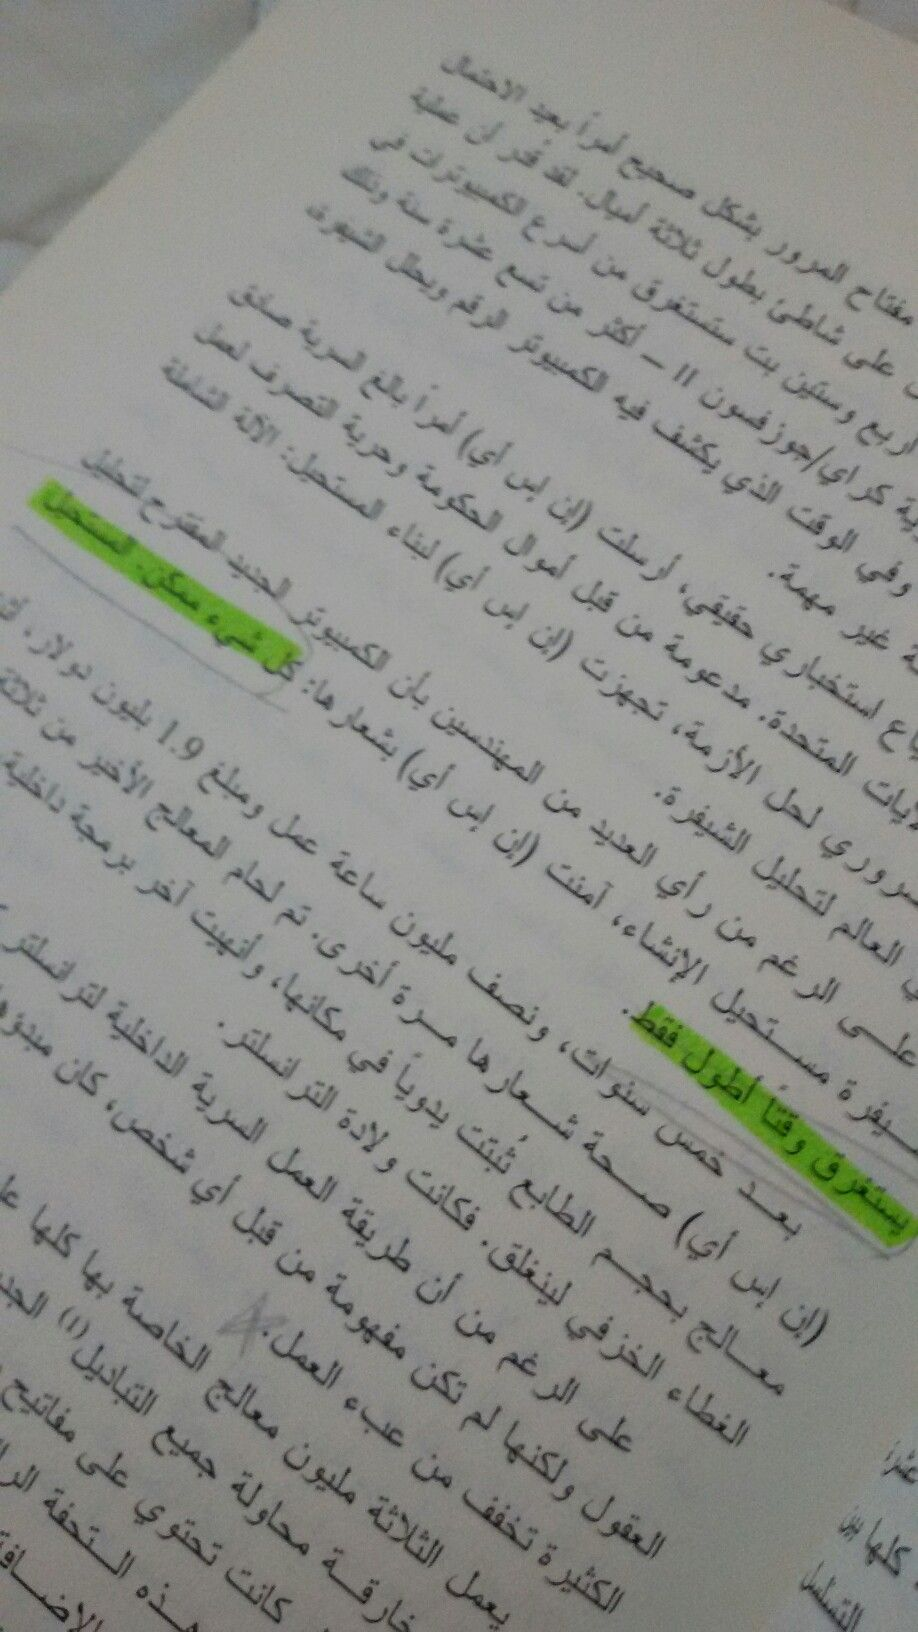 Pin by rajaa suliman on رجاويتقرأ_2016 Book quotes